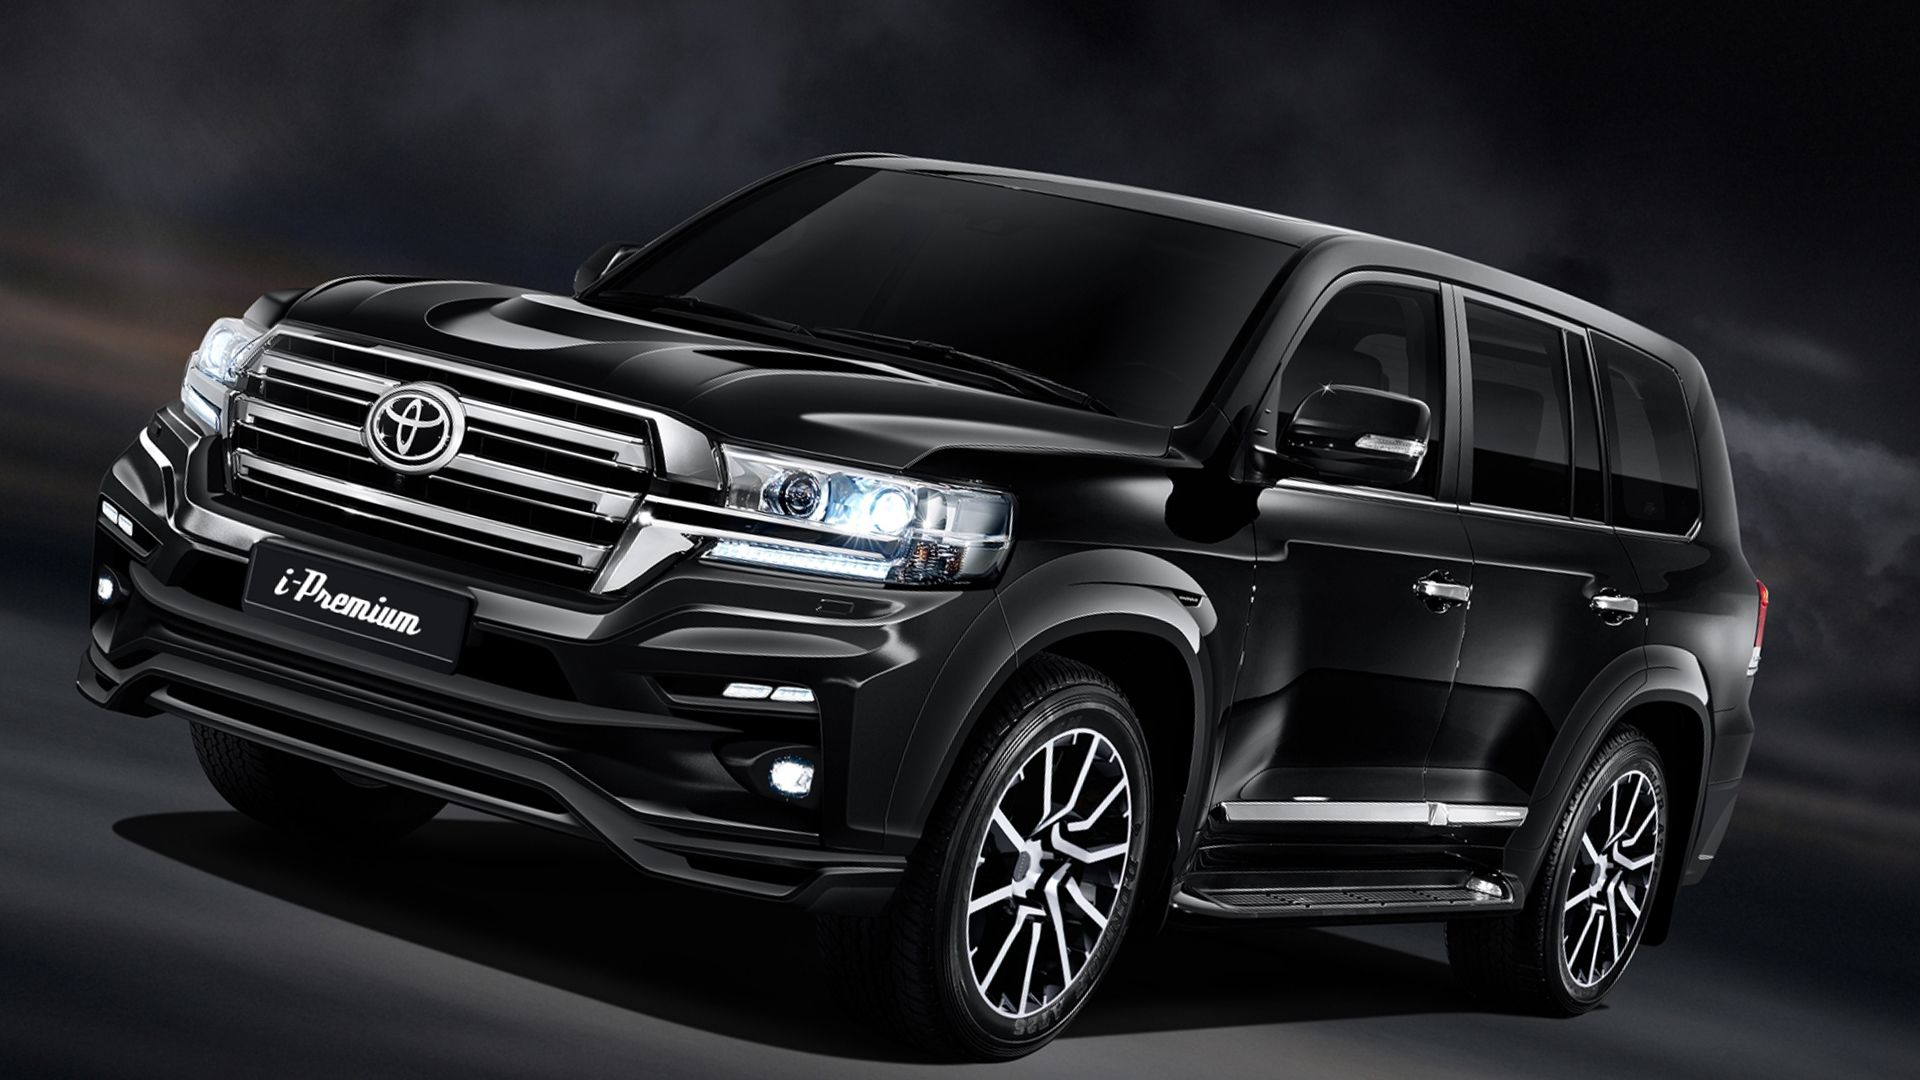 New 2019 Toyota Land Cruiser 200 Redesign | Toyota car prices list | Pinterest | Land cruiser 200